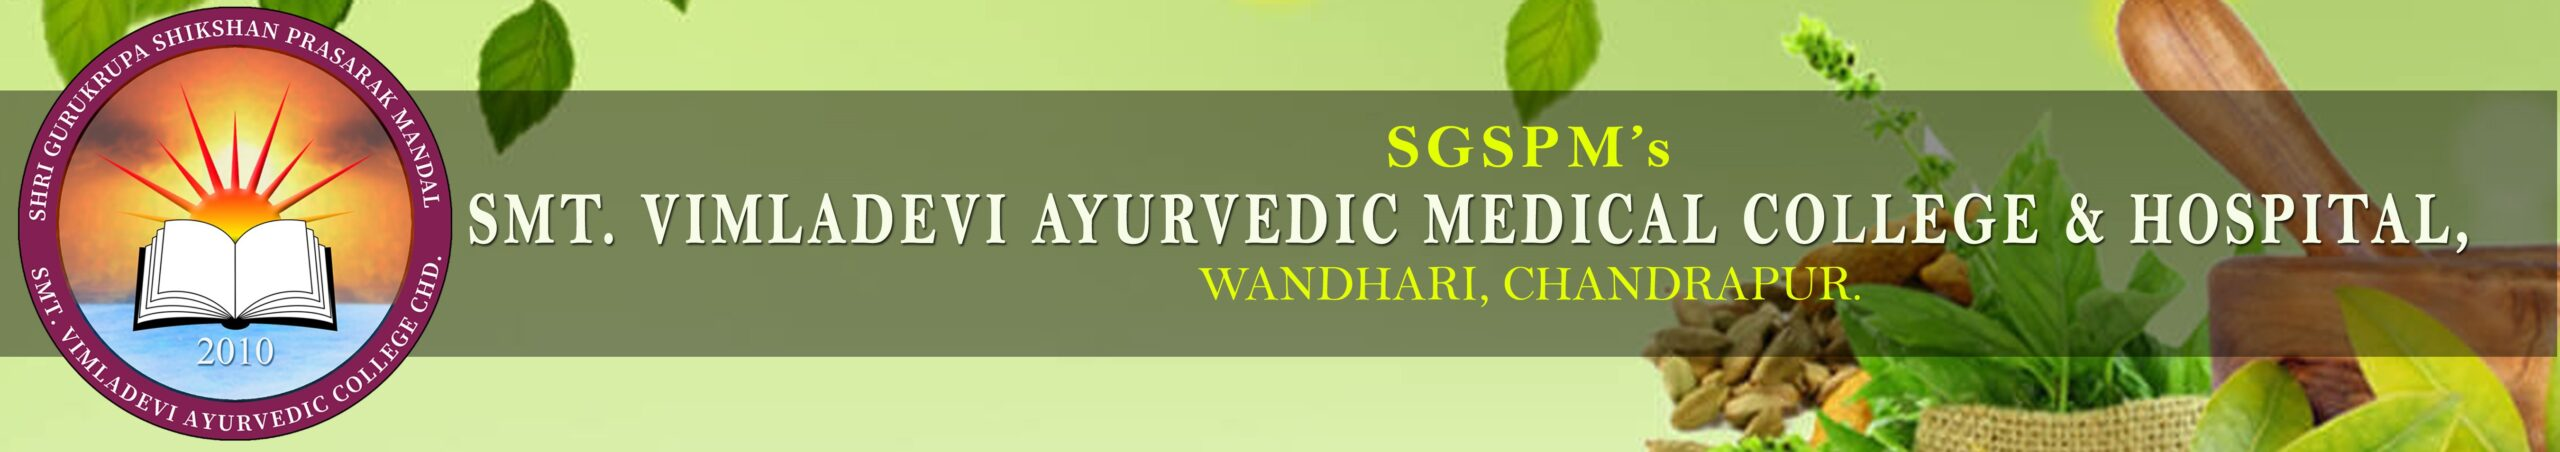 Smt Vimladevi Ayurvedic Medical College and Hospital